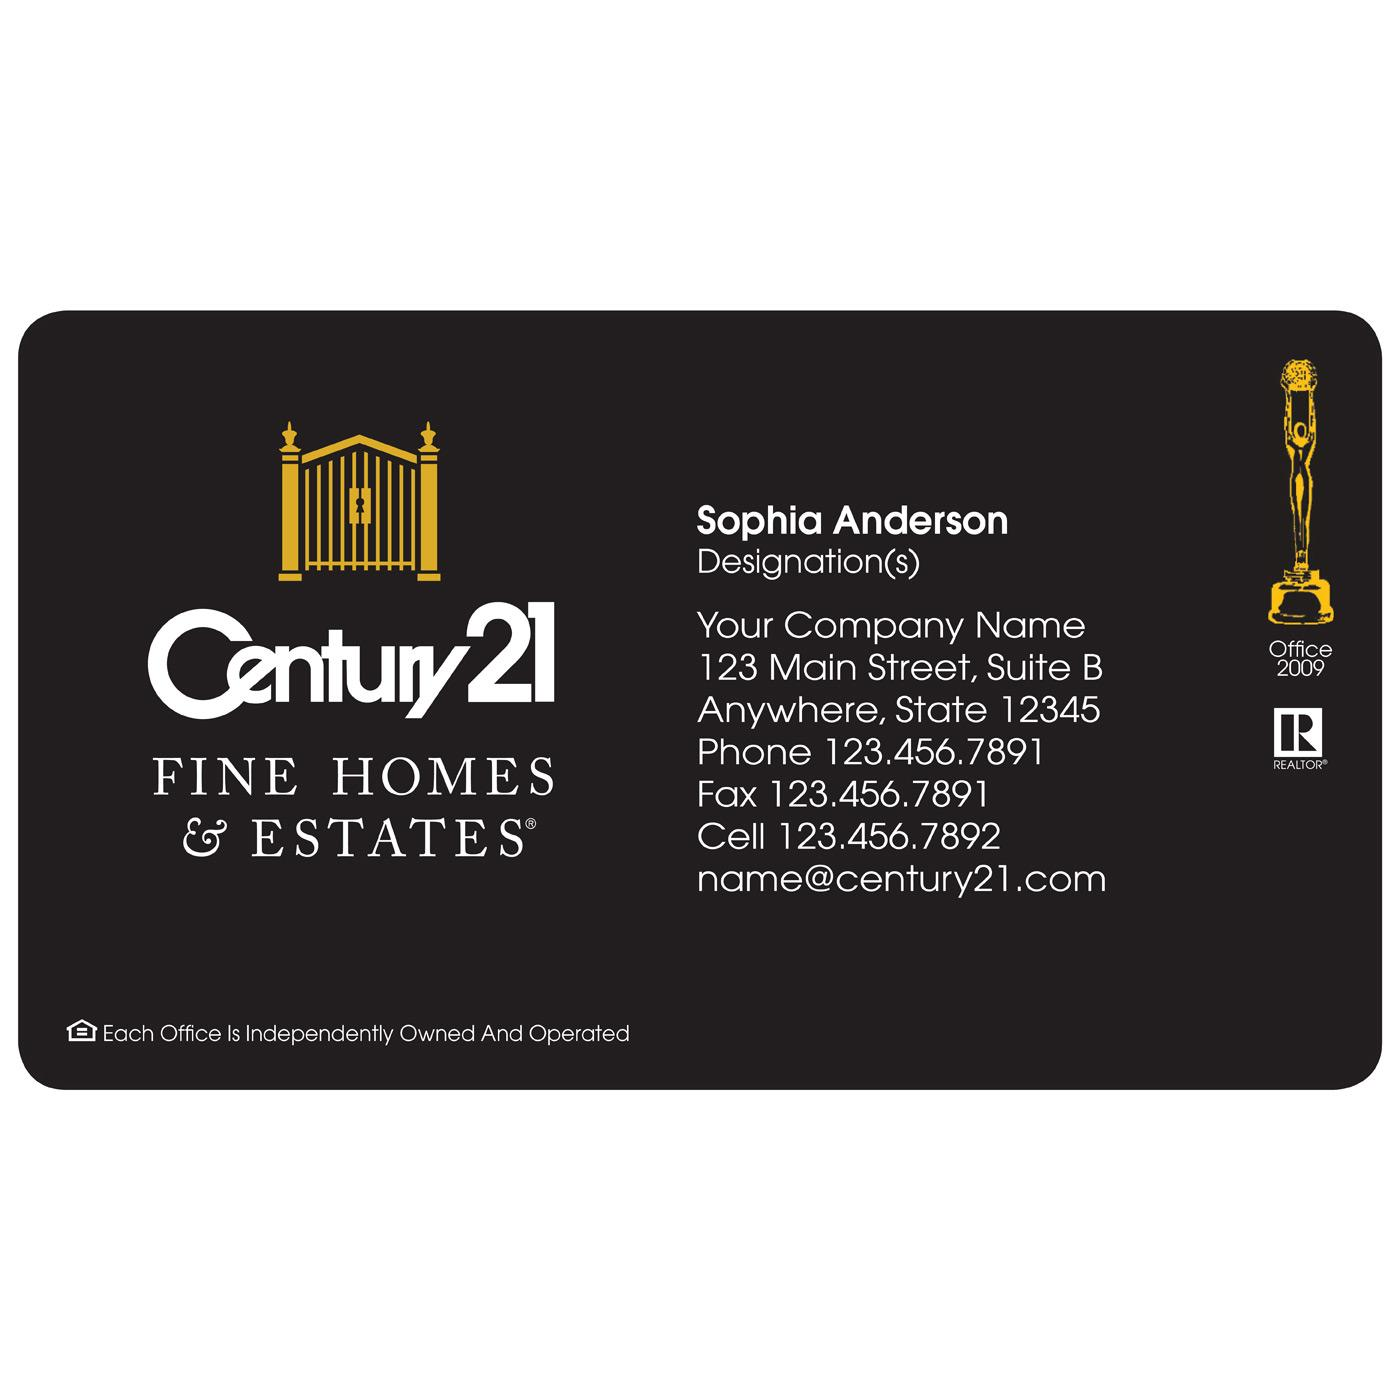 Century 21 Magnetic Business Card | Magnets USA®